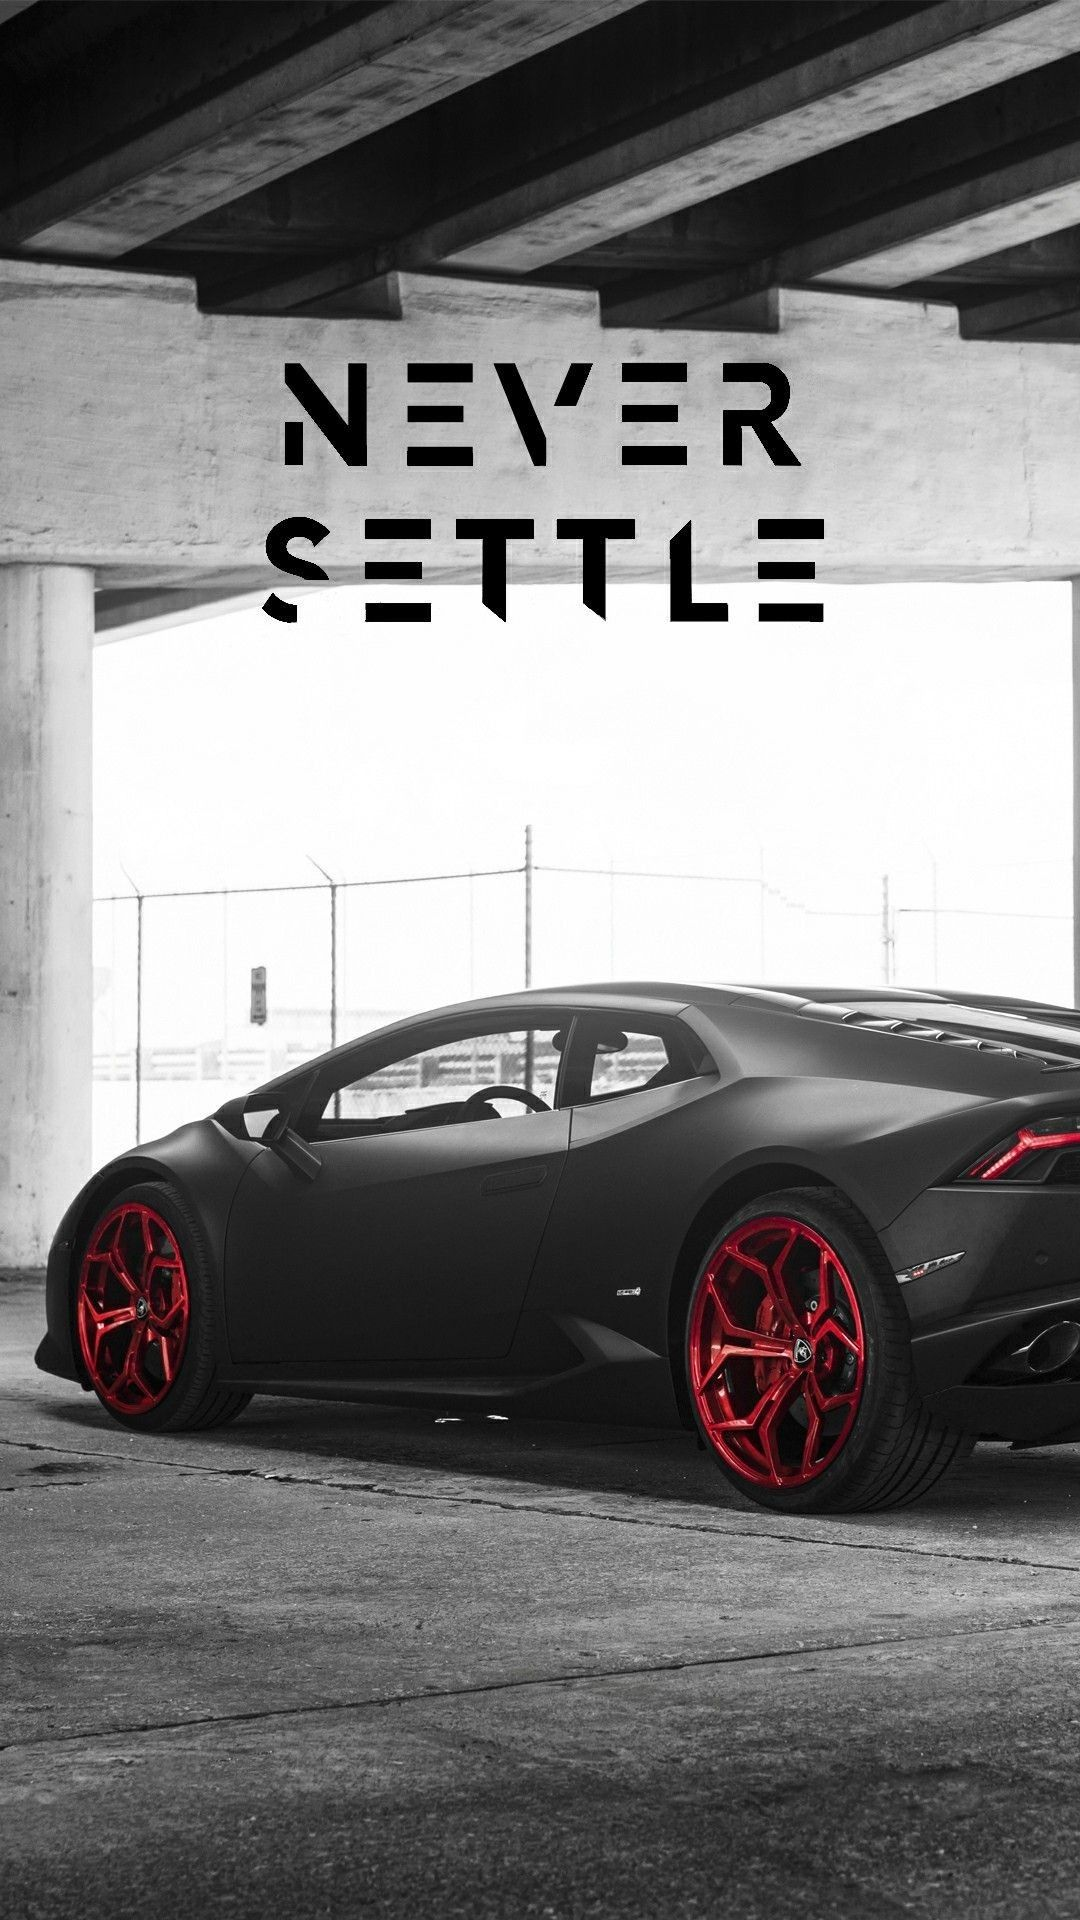 Pin By ニッキ On かっこいい Car Wallpapers Super Cars